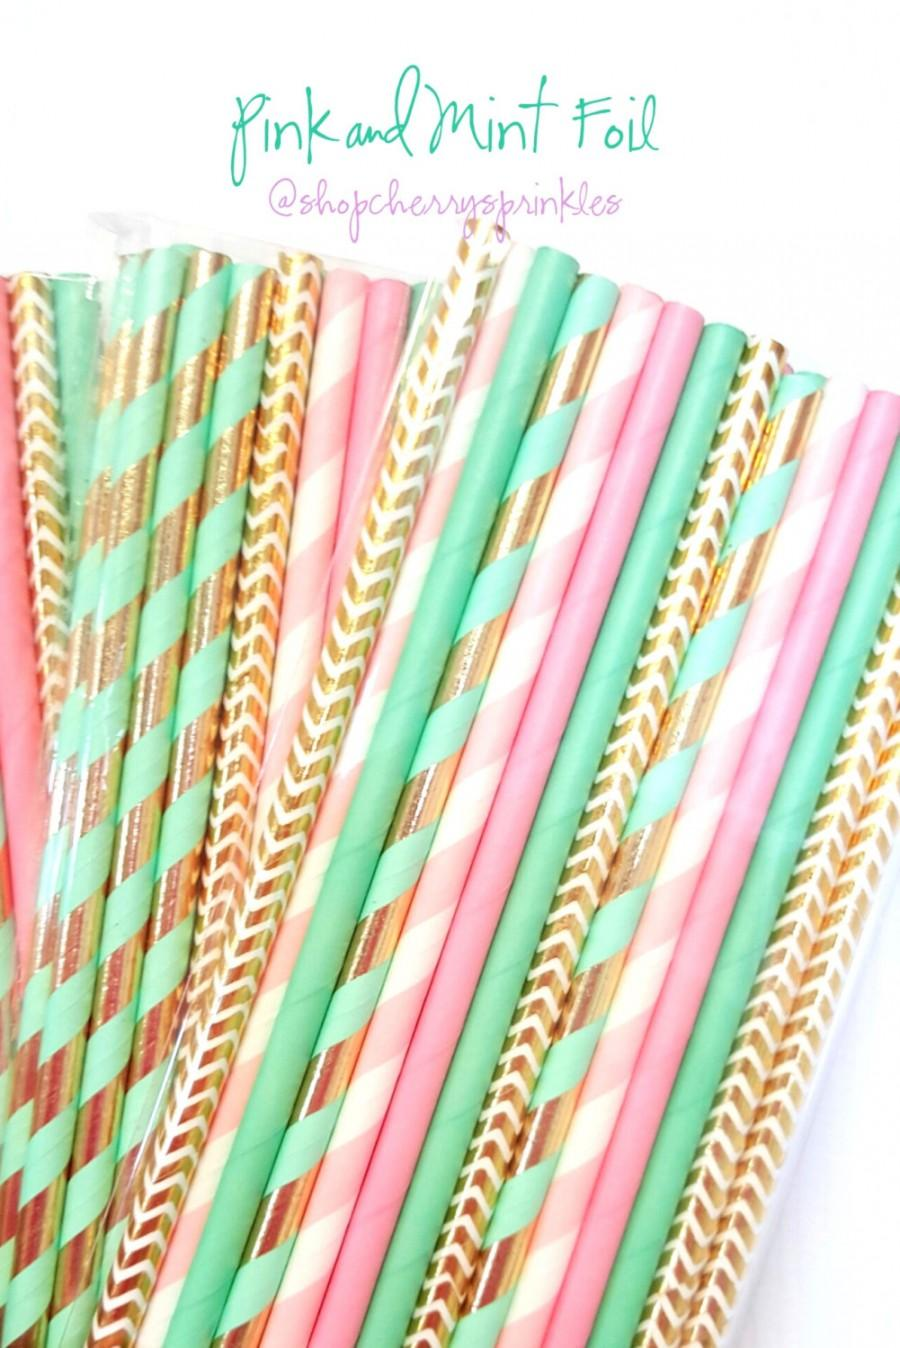 Hochzeit - Pink and Mint Party Supplies -Mint Straws -Pink Straws -Gold Foil Straws -Mint and Pink Wedding Decorations -Pink Stripe -Mint Stripe *Gold